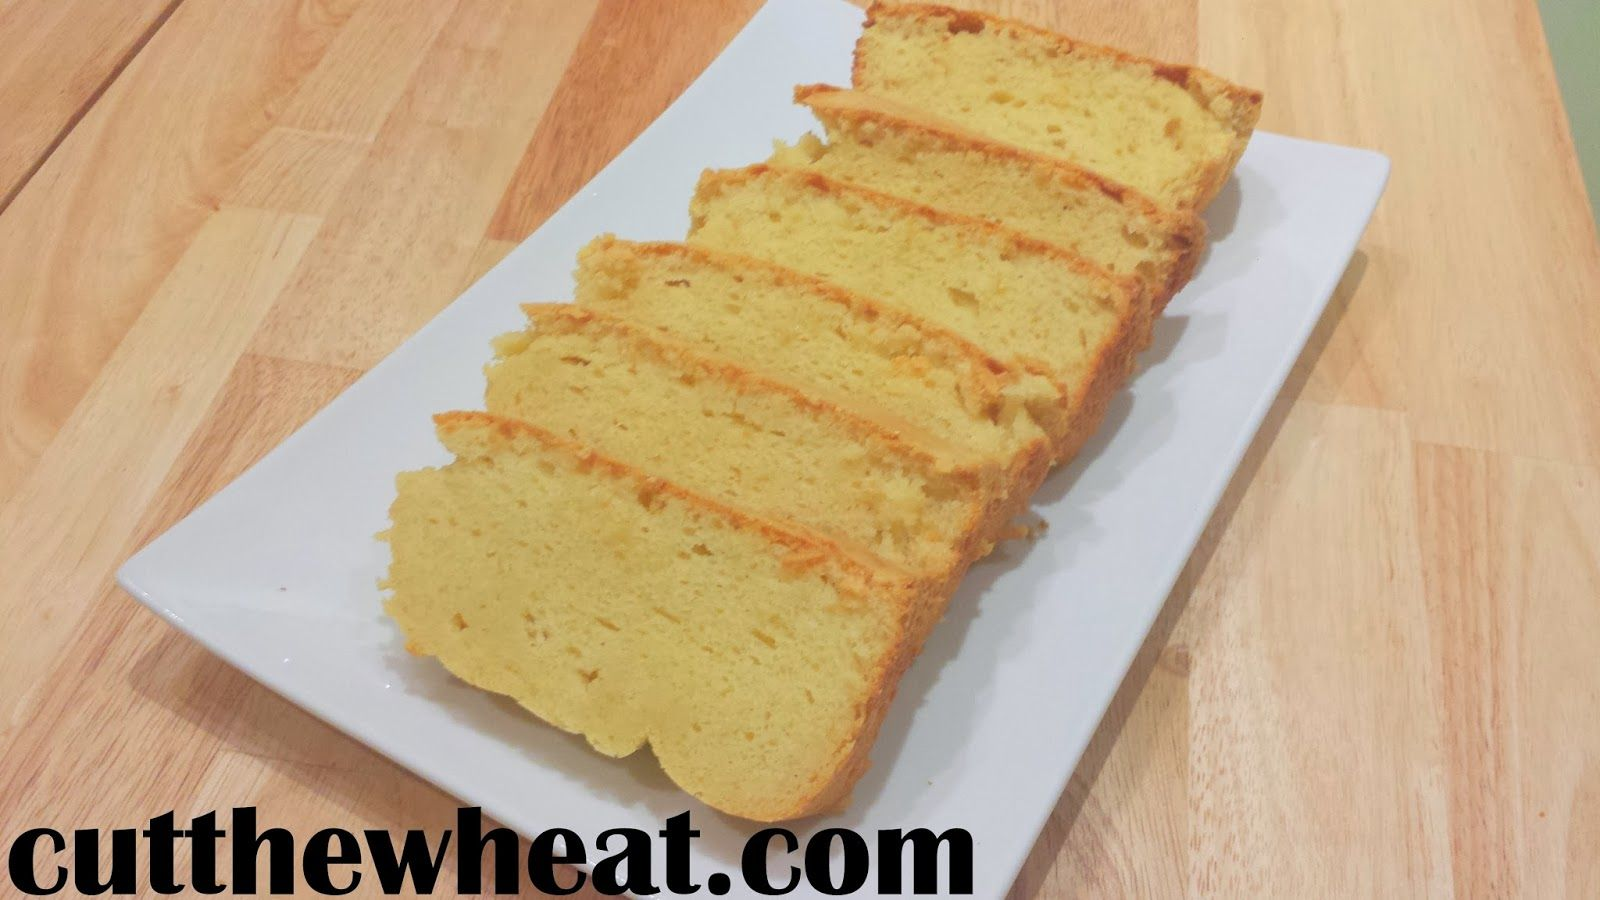 Low Carb Pound Cake Recipes: Low Carb, Sugar Free And Gluten Free Recipes For All